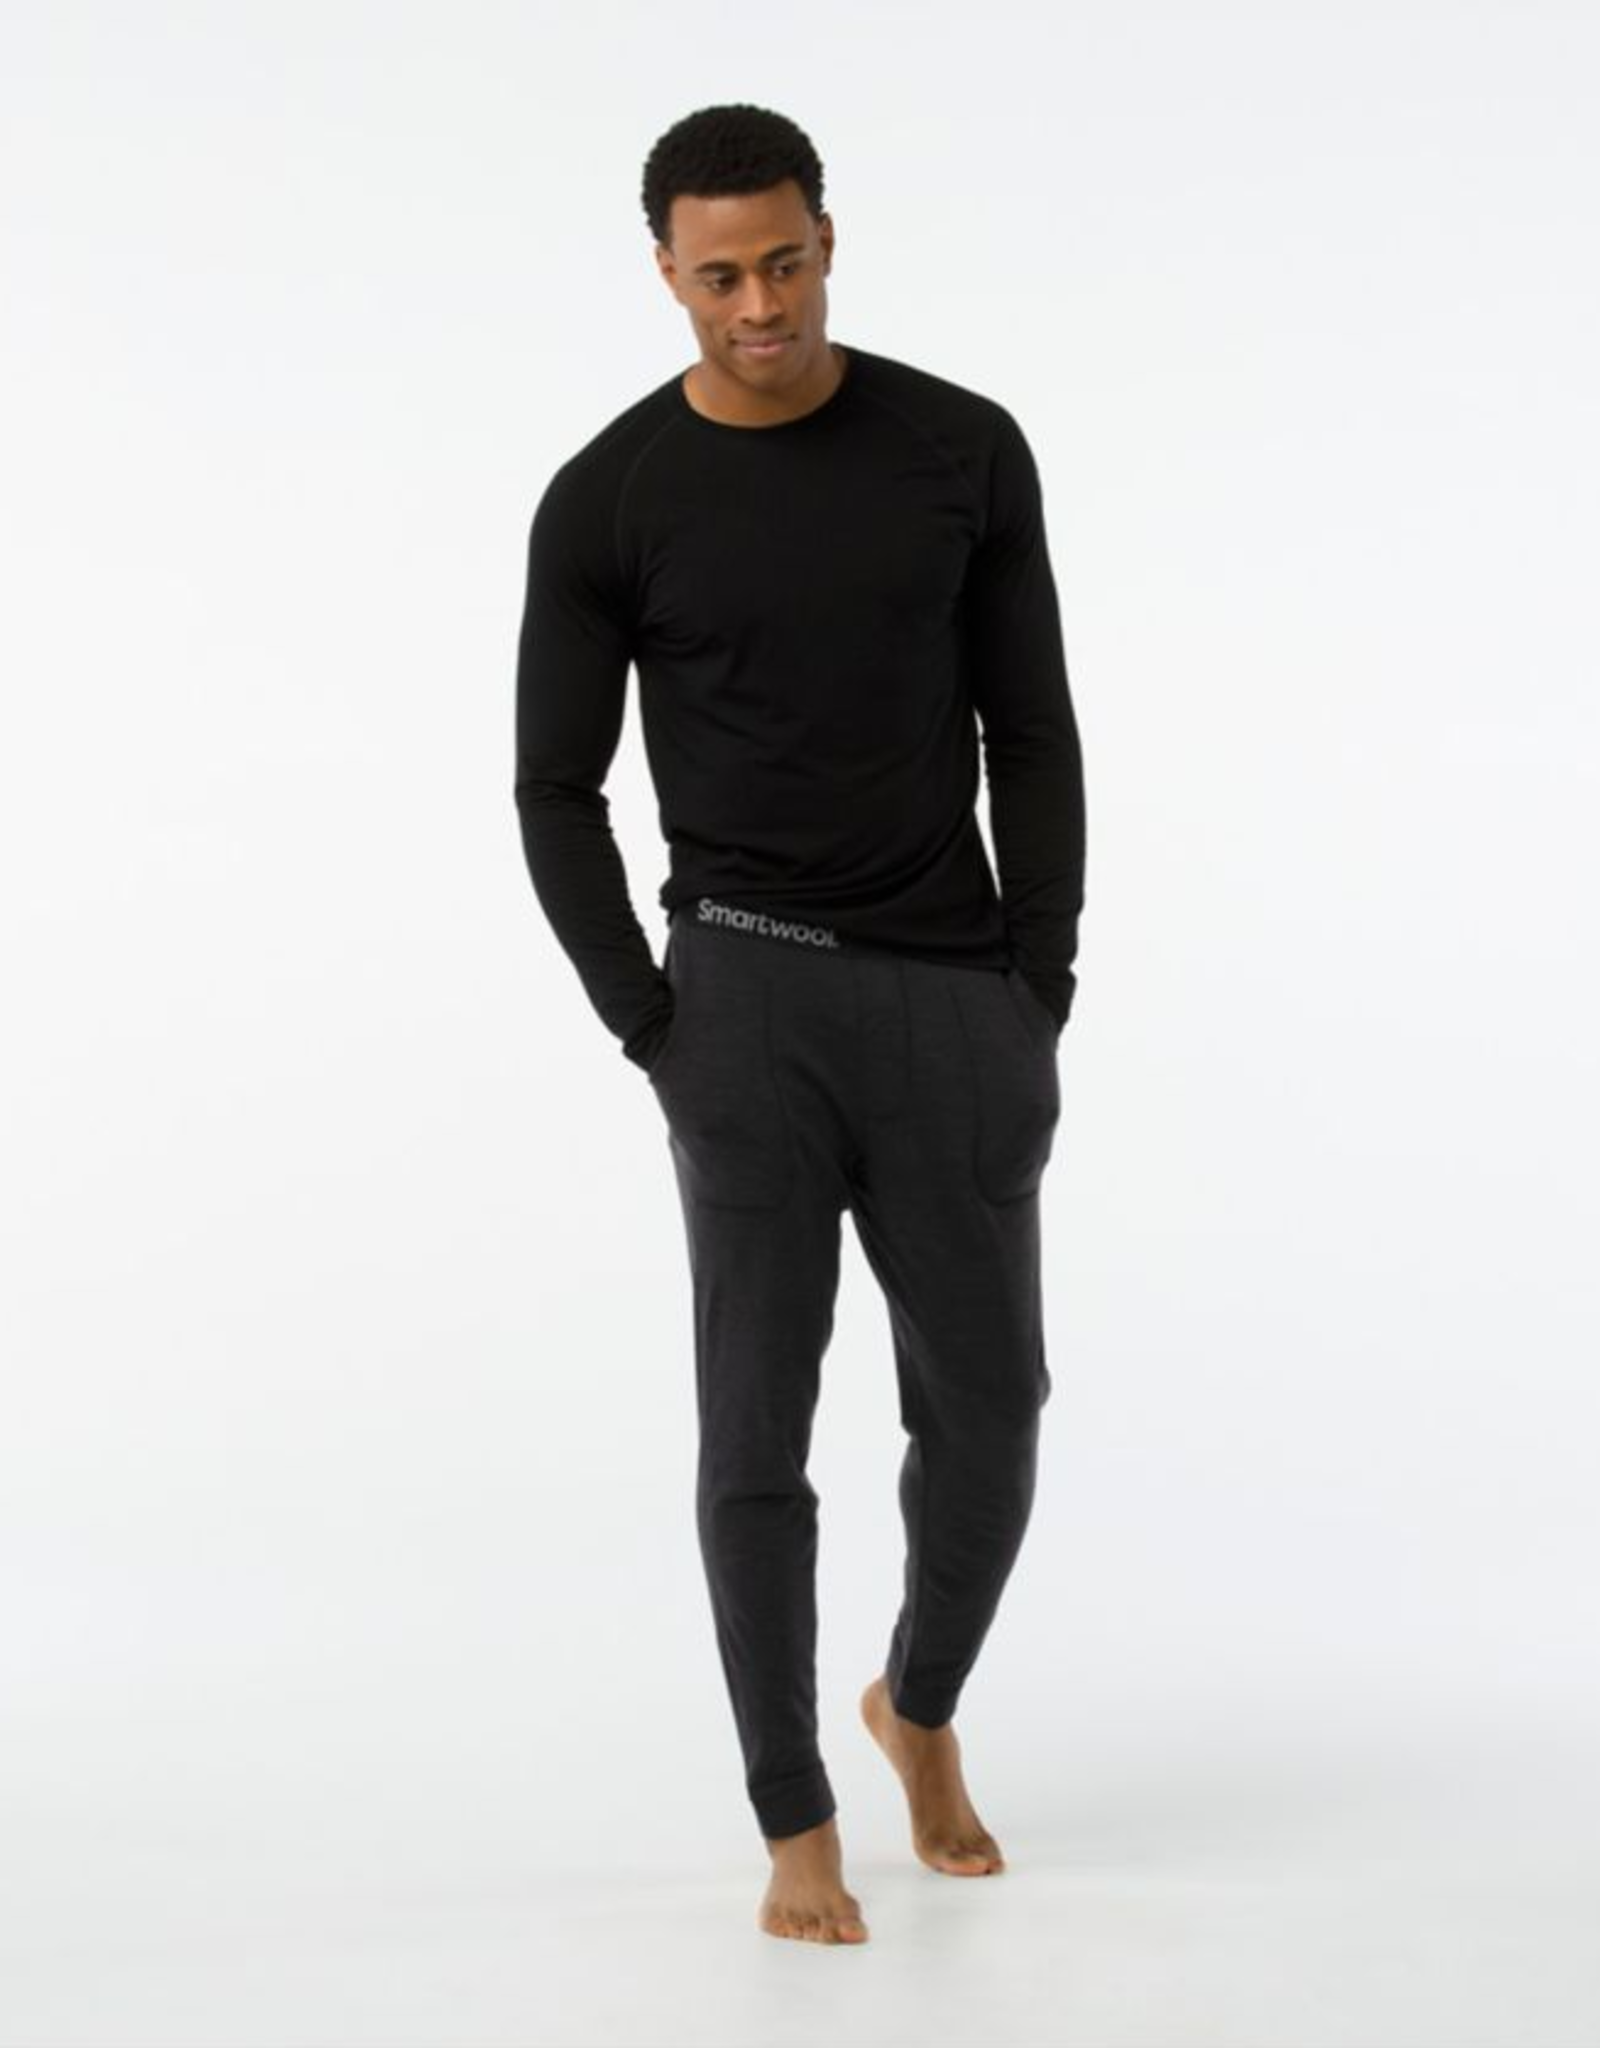 SMARTWOOL SmartWool Men's Merino250 Jogger Bottom Charcoal